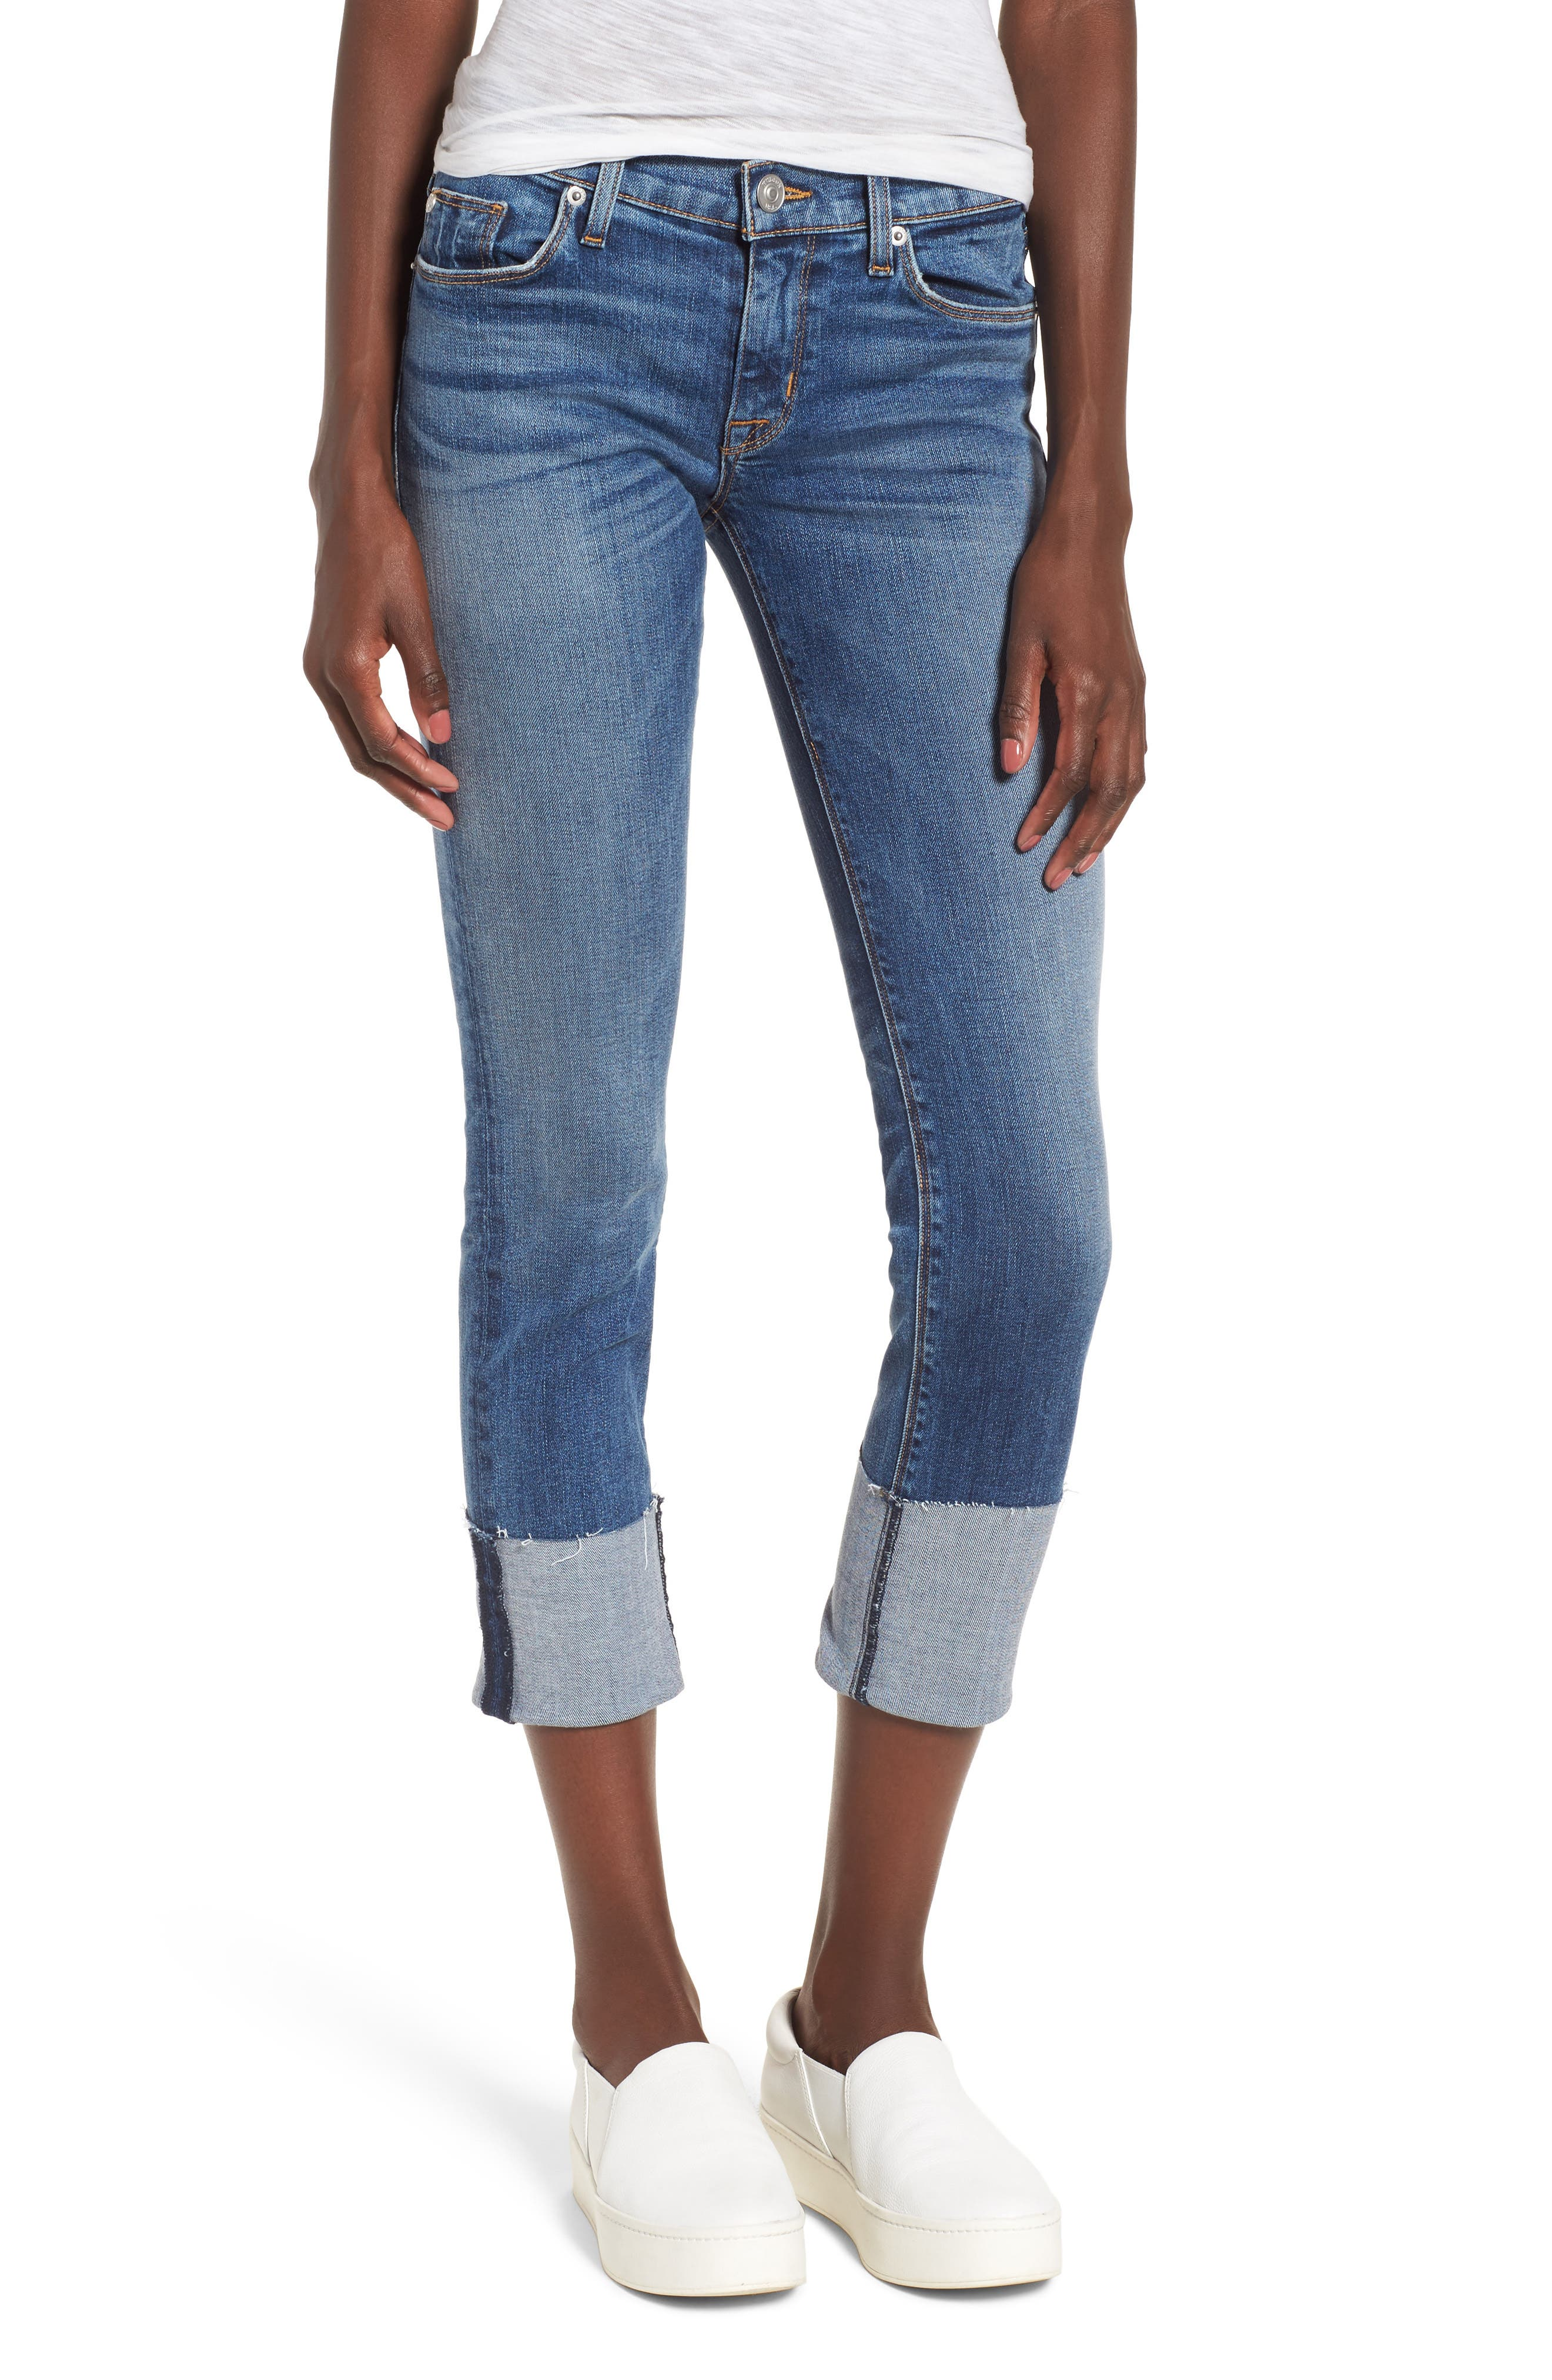 Alternate Image 1 Selected - Hudson Jeans Tally Cuffed Crop Skinny Jeans